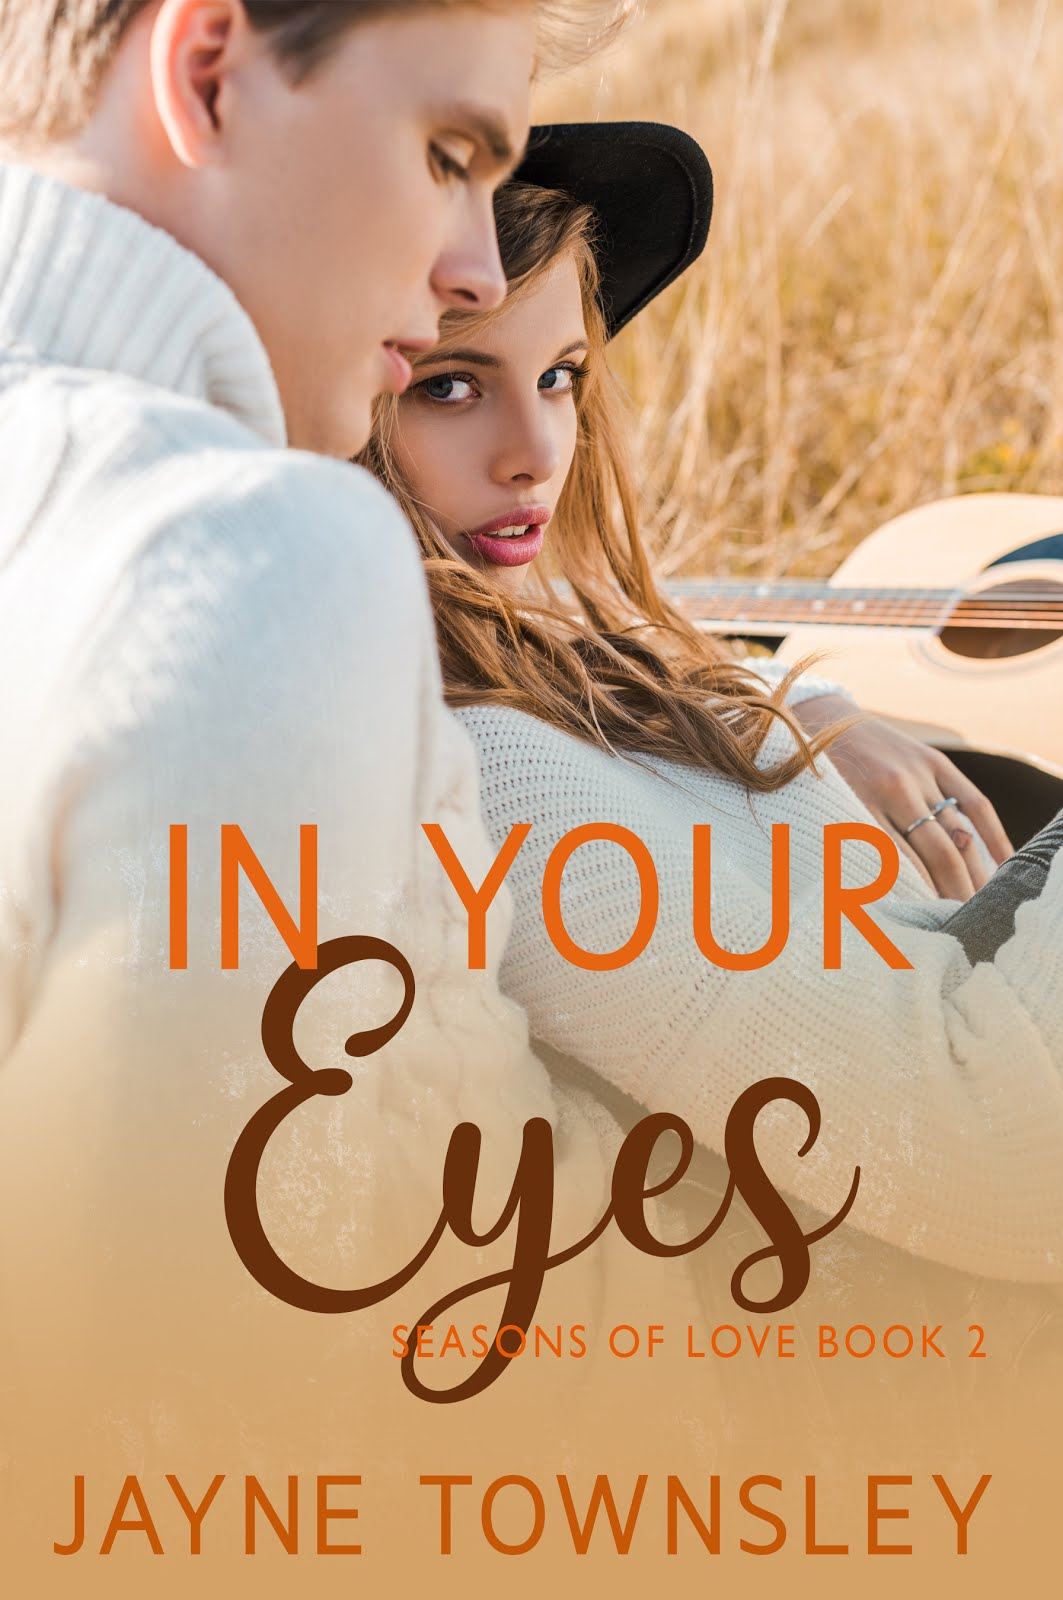 In Your Eyes by Jayne Townsley